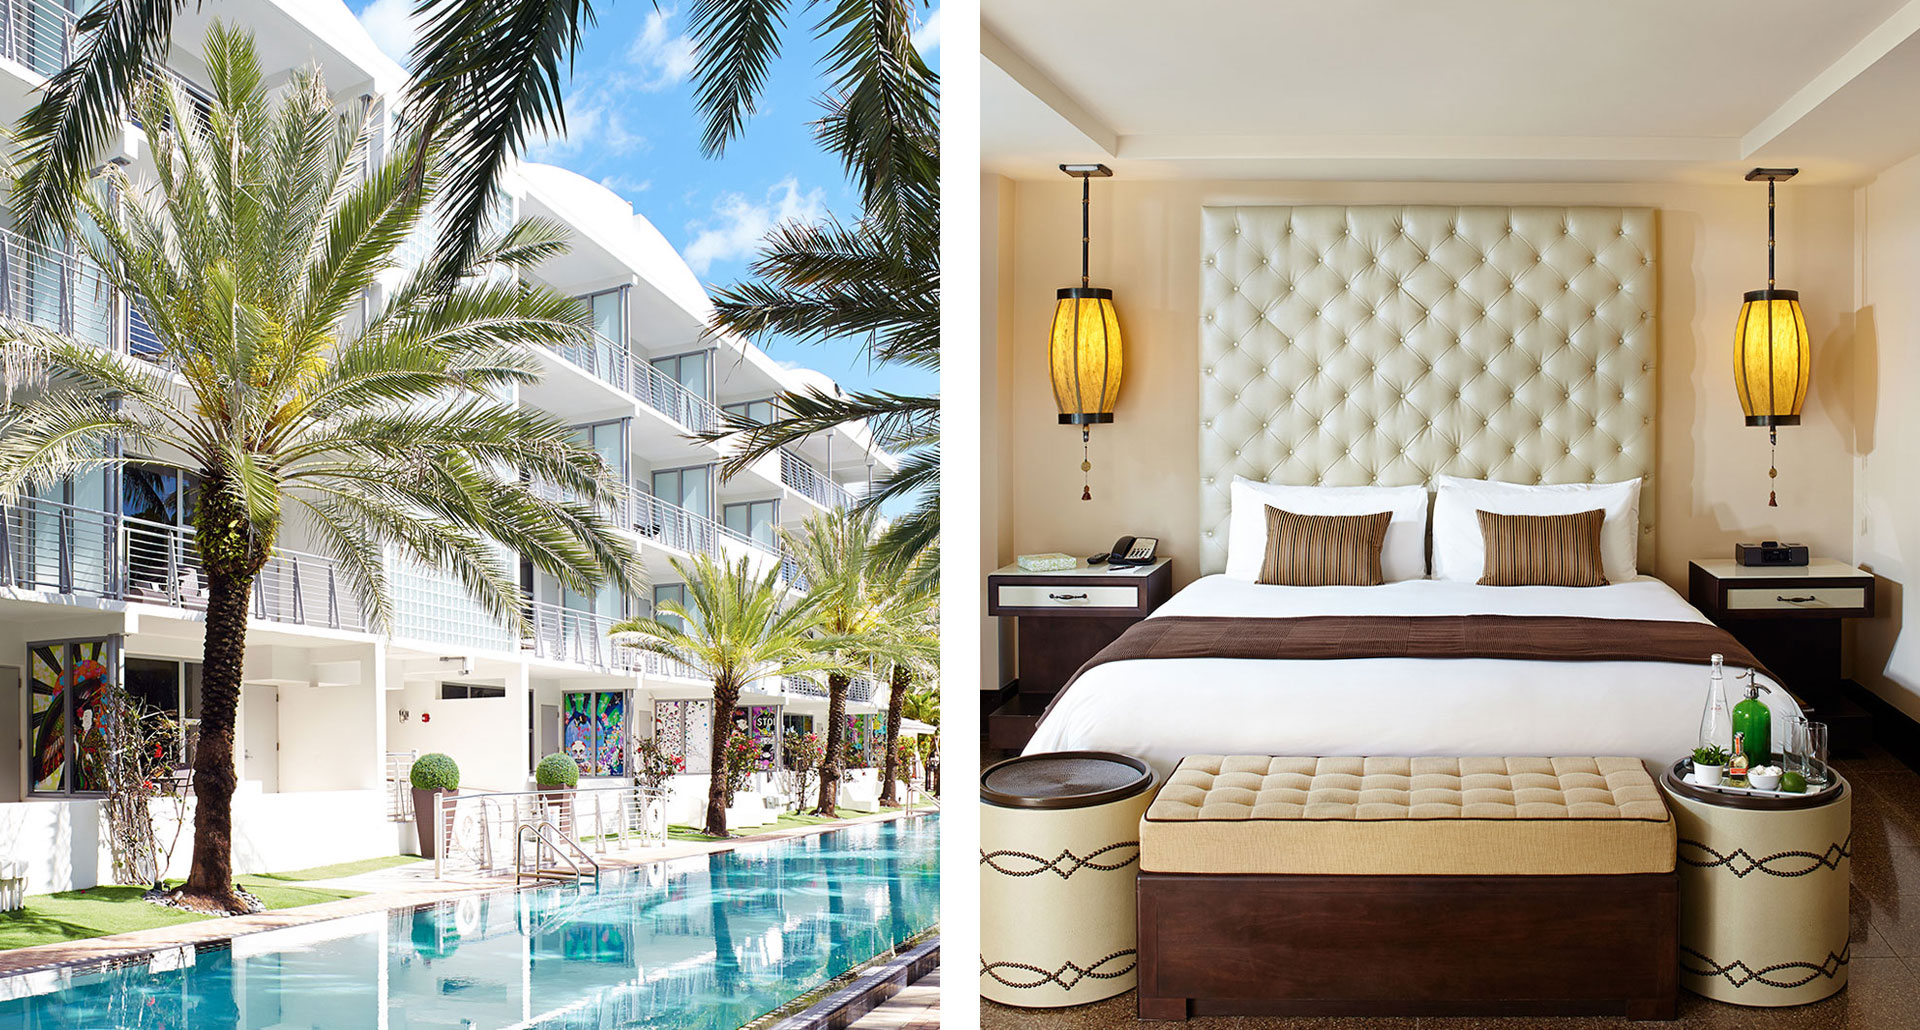 National Hotel, An Oceanfront Resort - boutique hotel in Miami